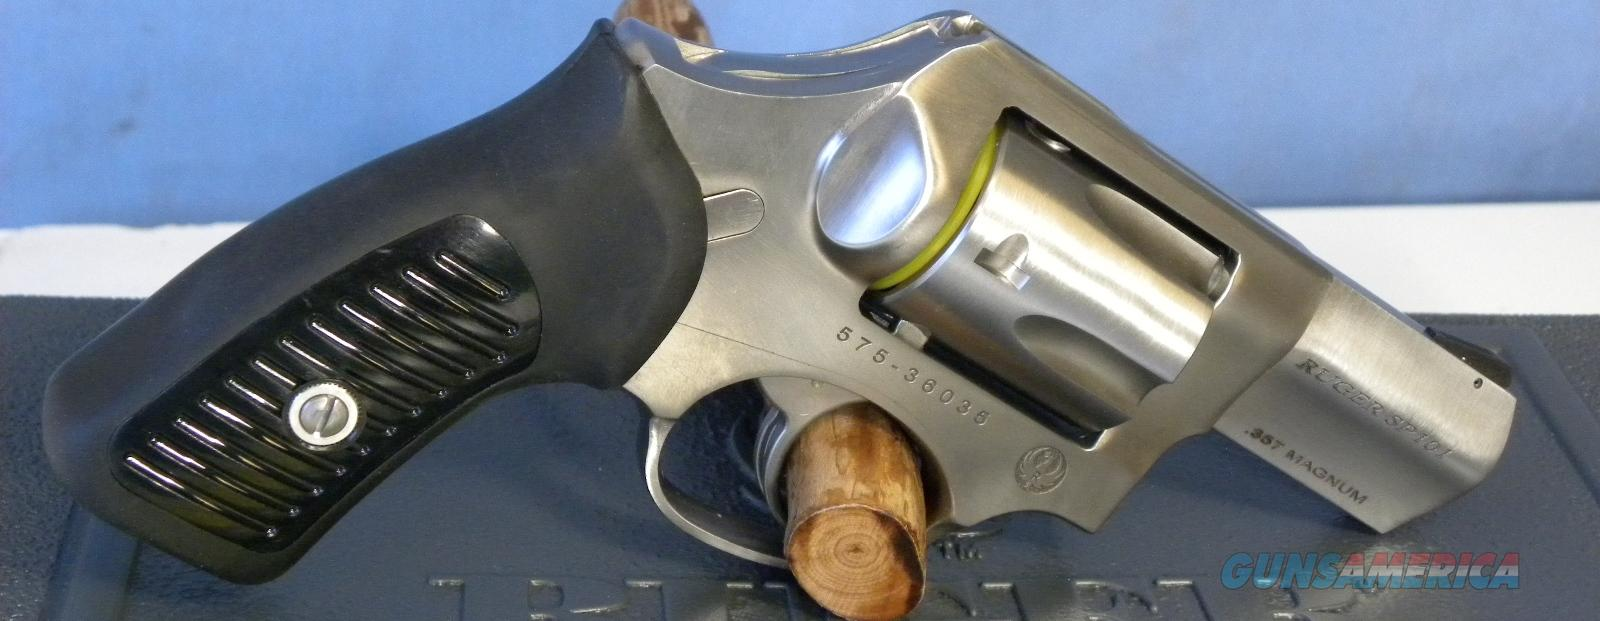 Ruger SP101 .357 Mag SS  Guns > Pistols > Ruger Double Action Revolver > SP101 Type